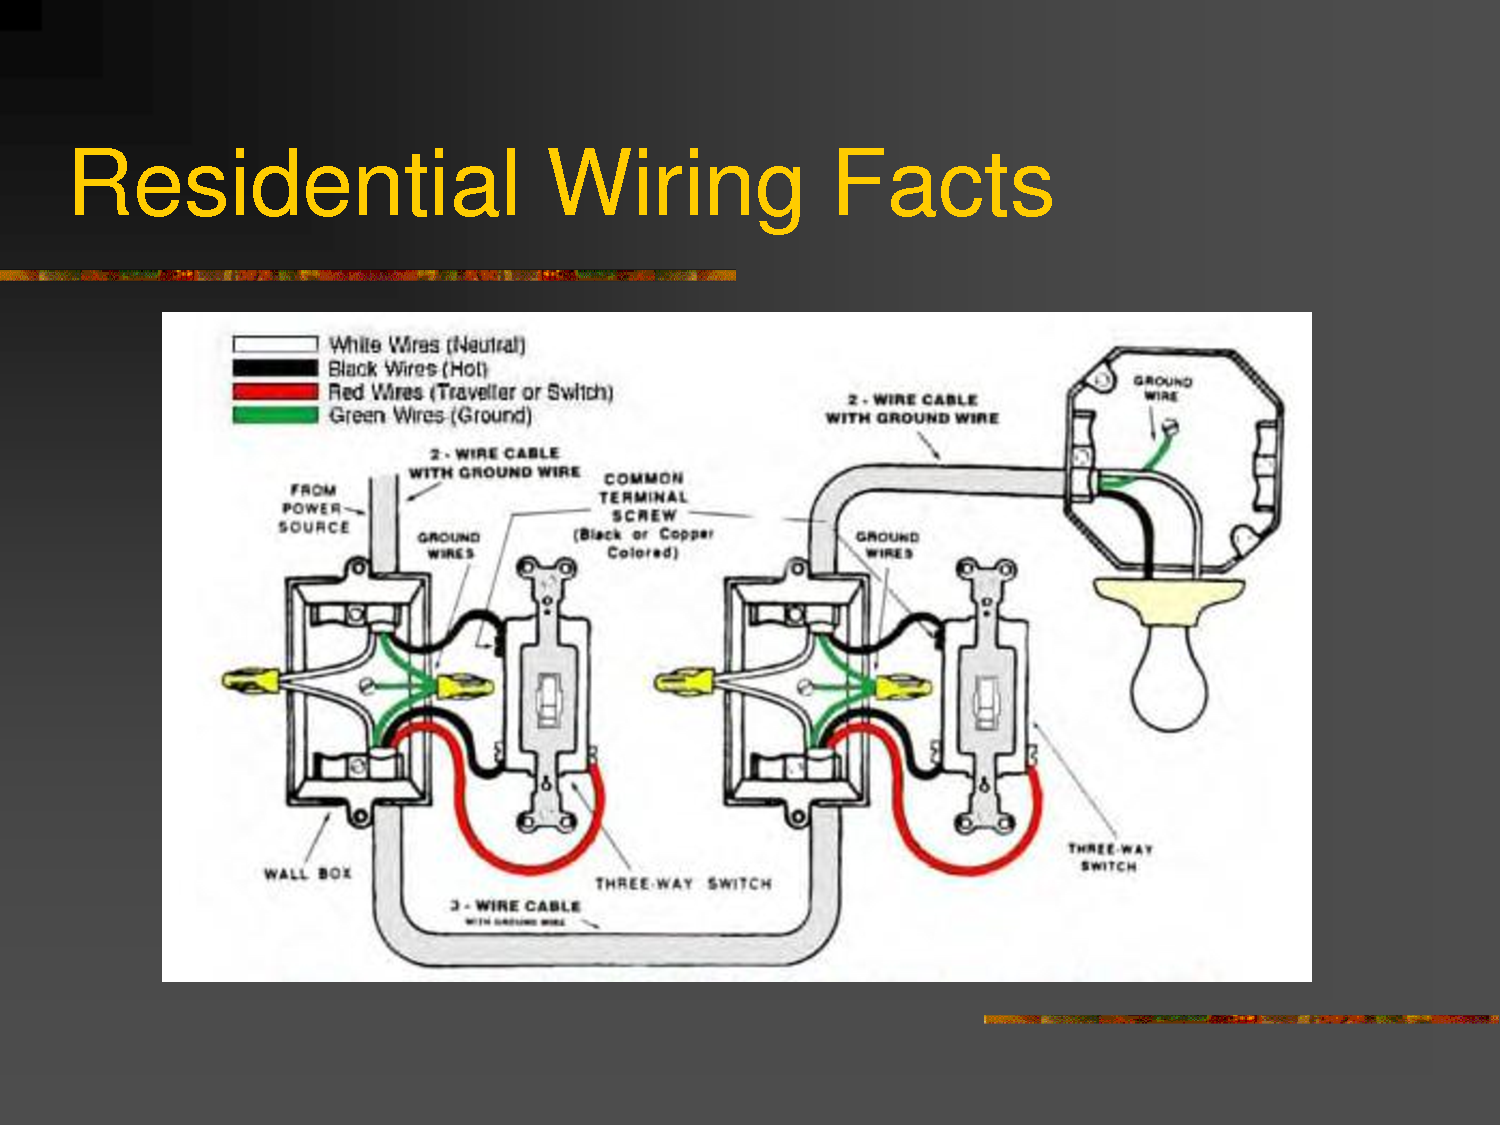 4 best images of residential wiring diagrams house electrical residential home wiring diagrams residential electrical wiring drawing [ 1500 x 1125 Pixel ]